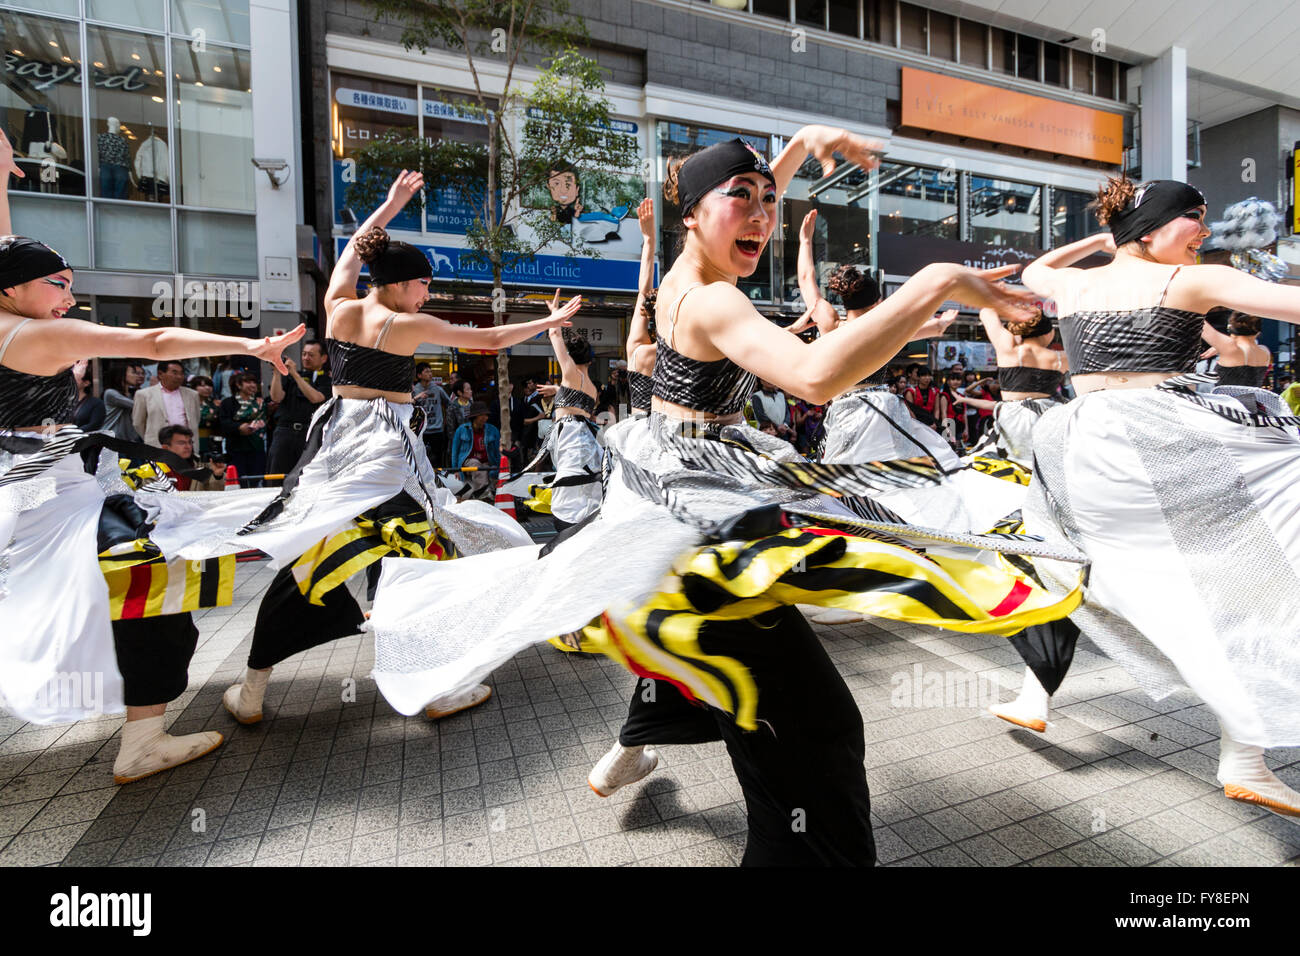 Japanese young women dance team in black and white costume formation dancing and skirts swirling, in shopping arcade Stock Photo